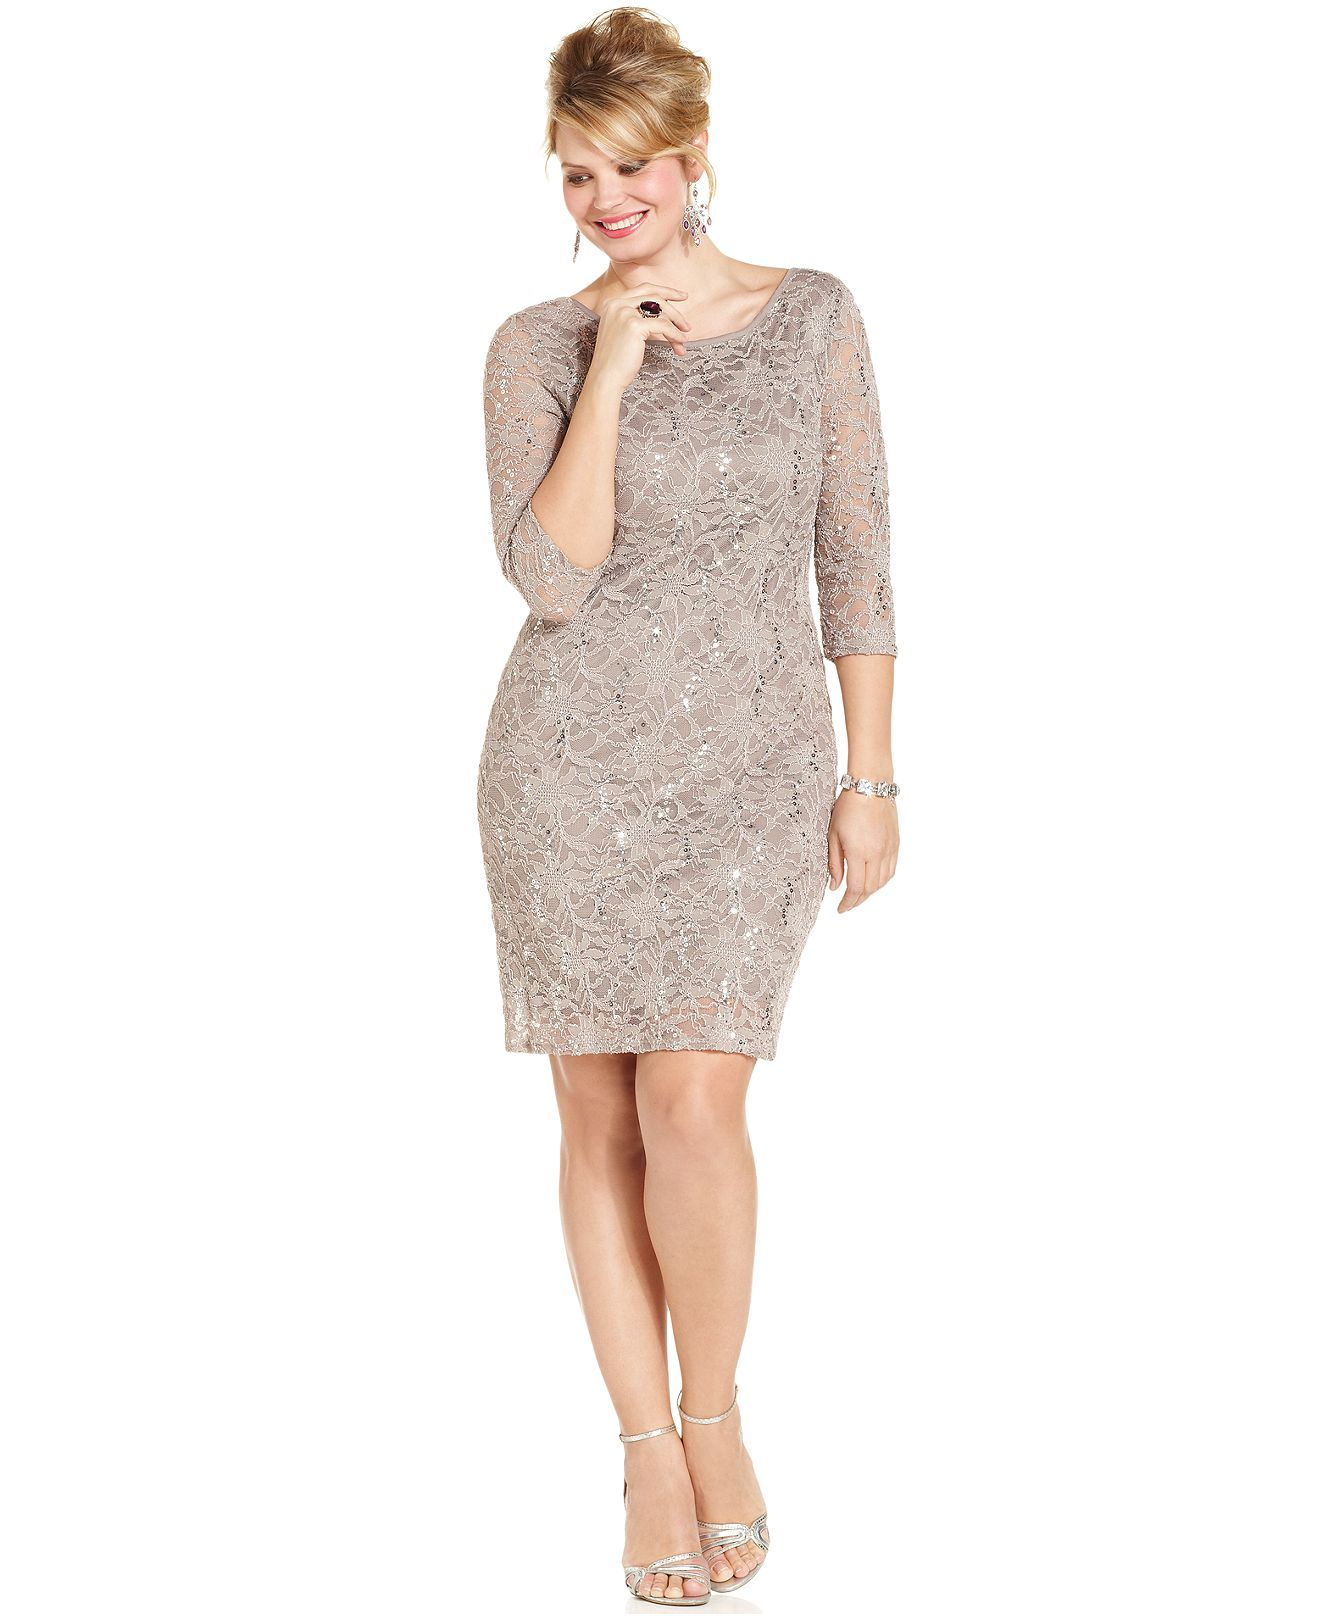 Onyx Plus Size Dress Three Quarter Sleeve Sequined Lace Plus Size